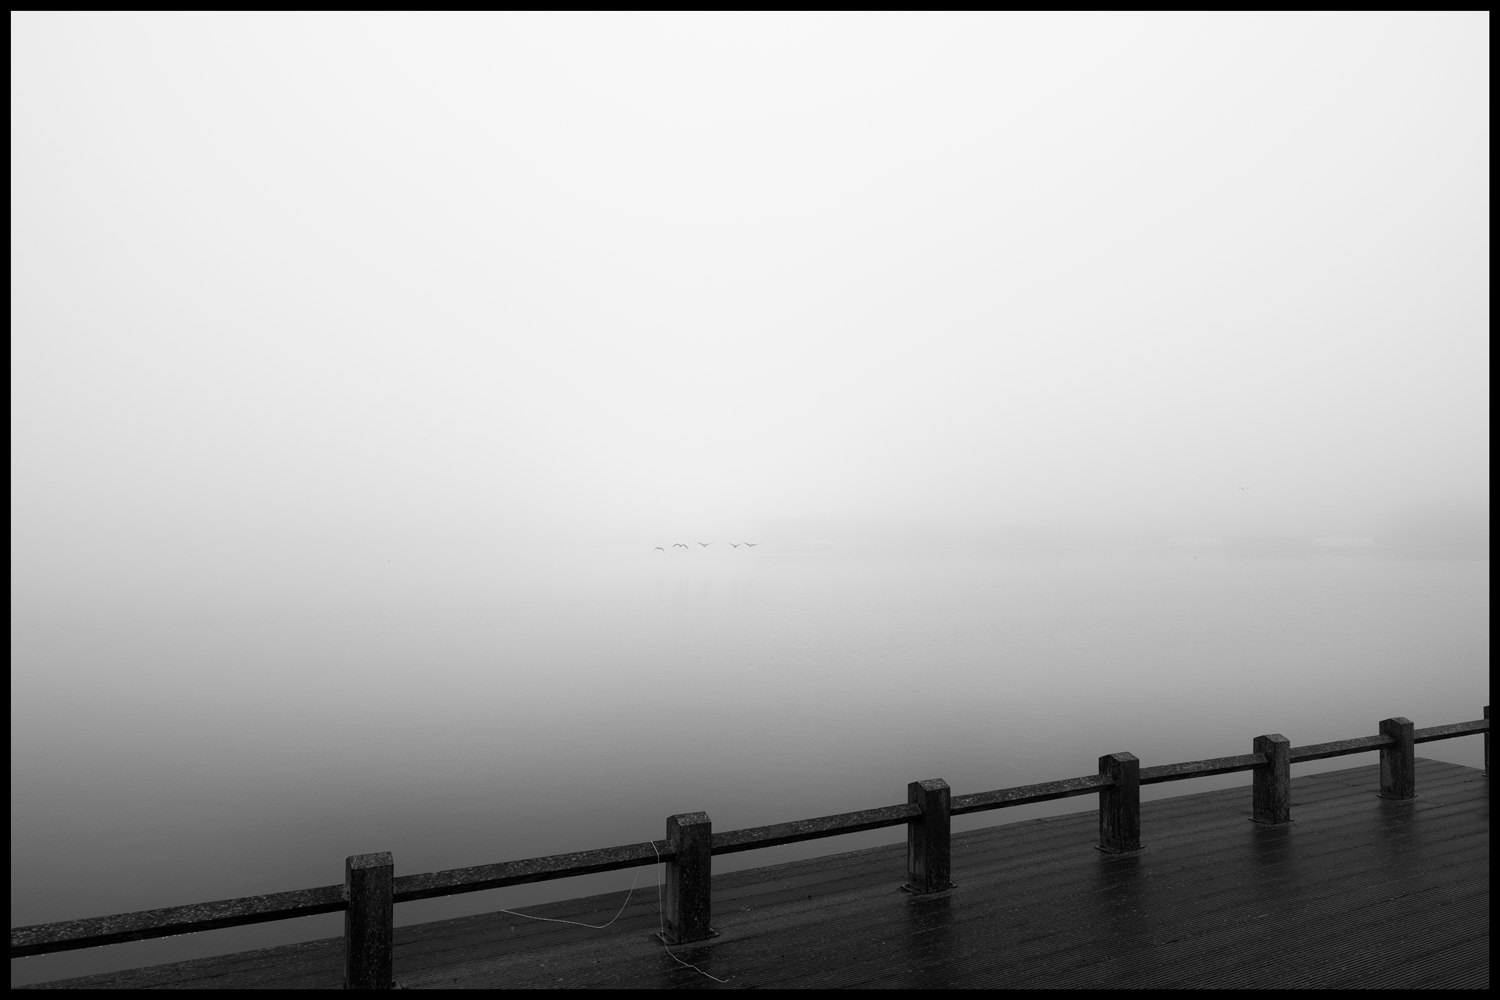 Five flying Canadian geese emerging from the fog. In the foreground is a small wooden jetty